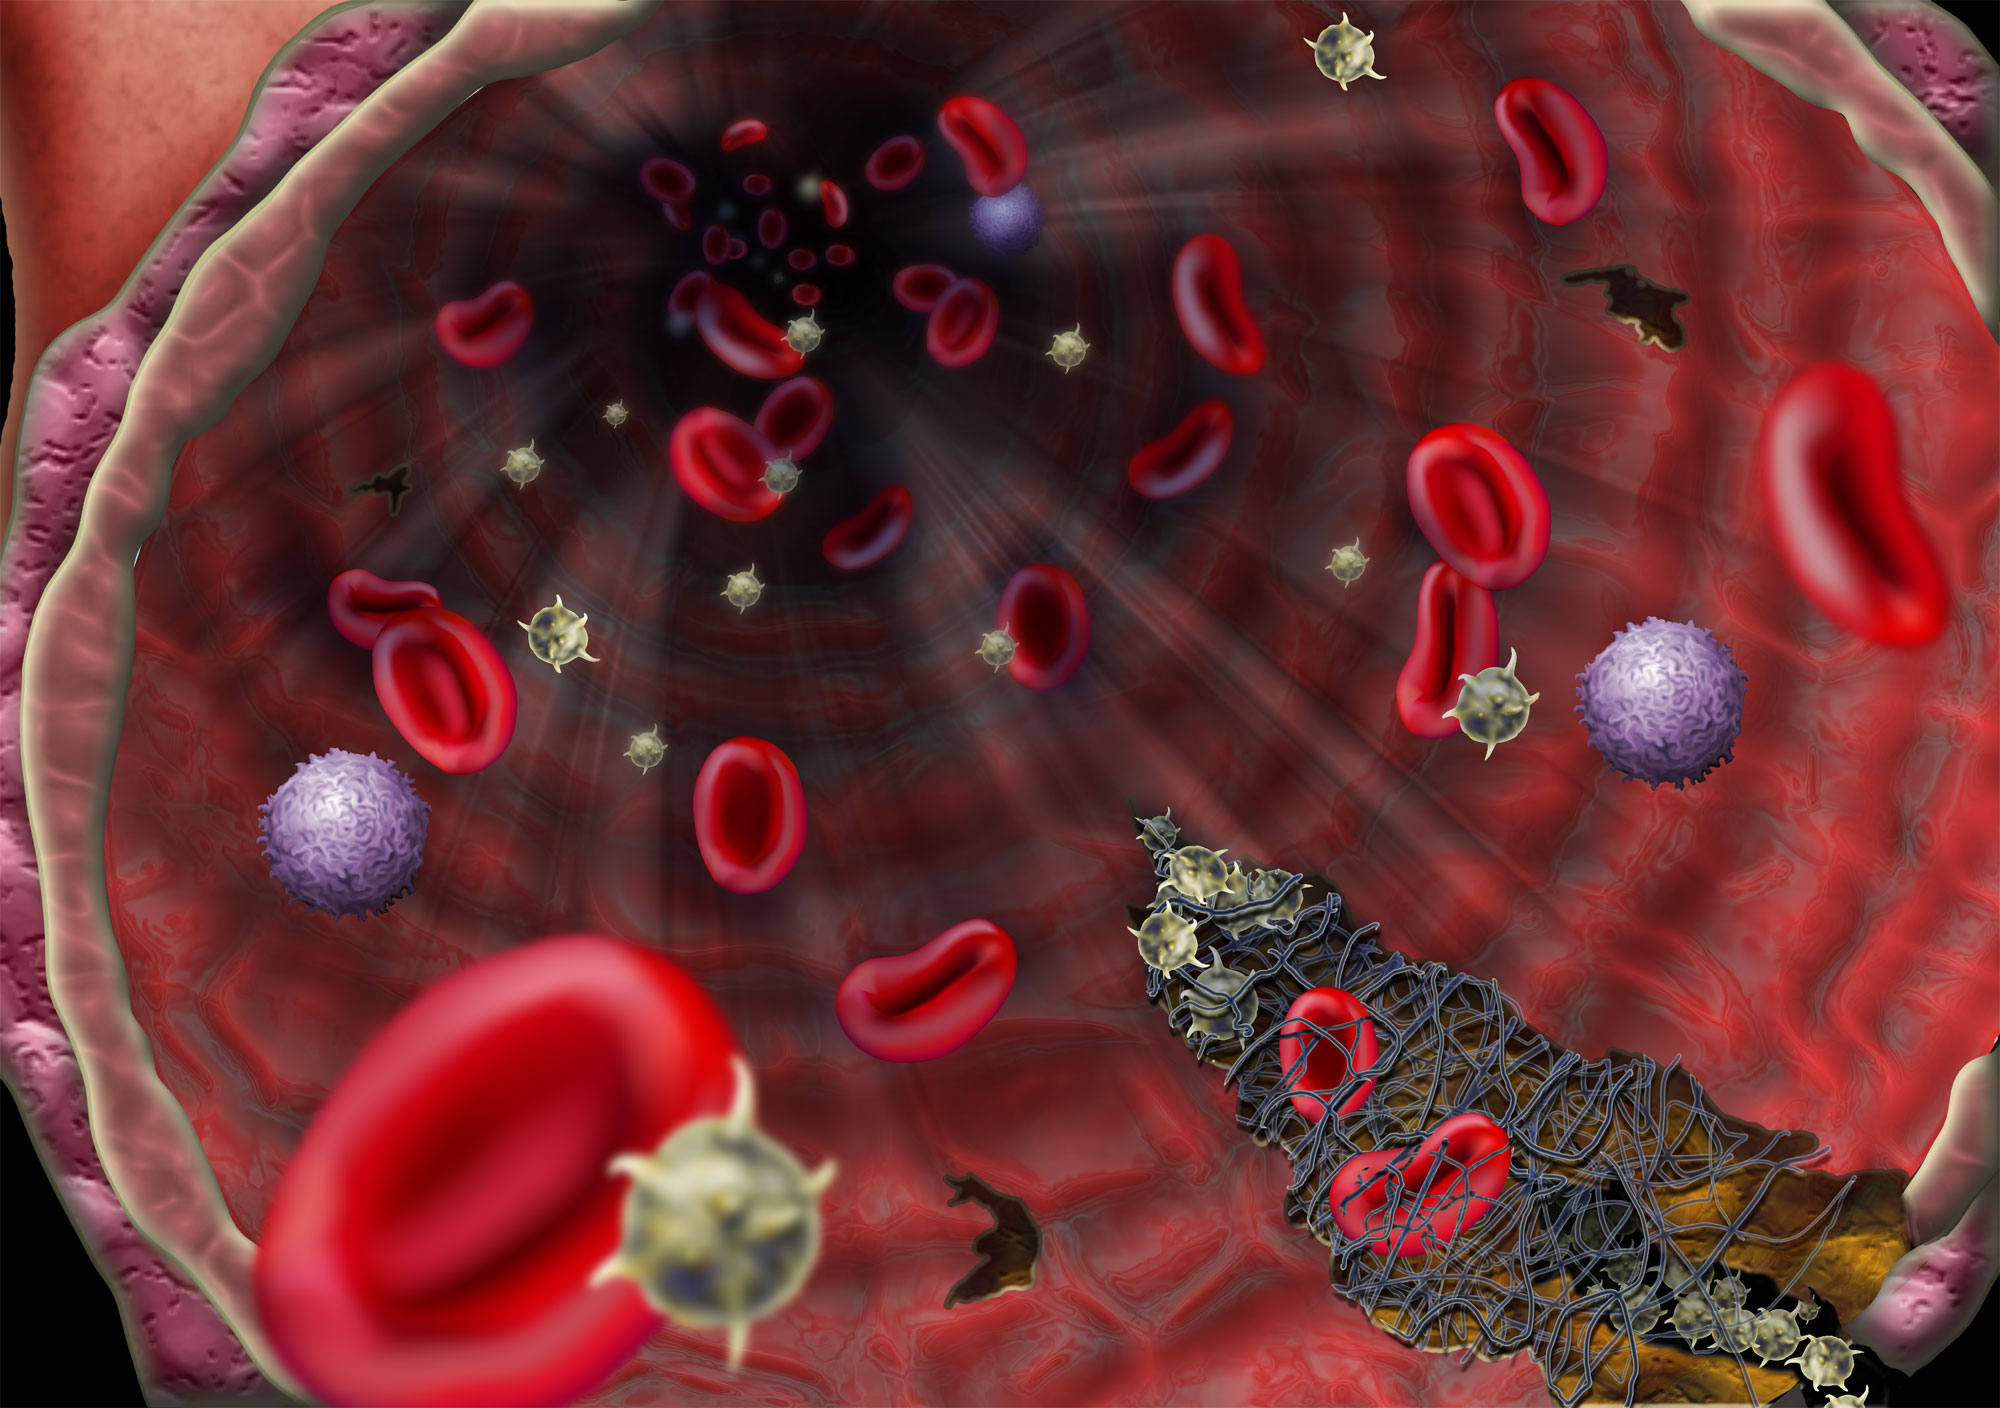 blood_clotting_h1